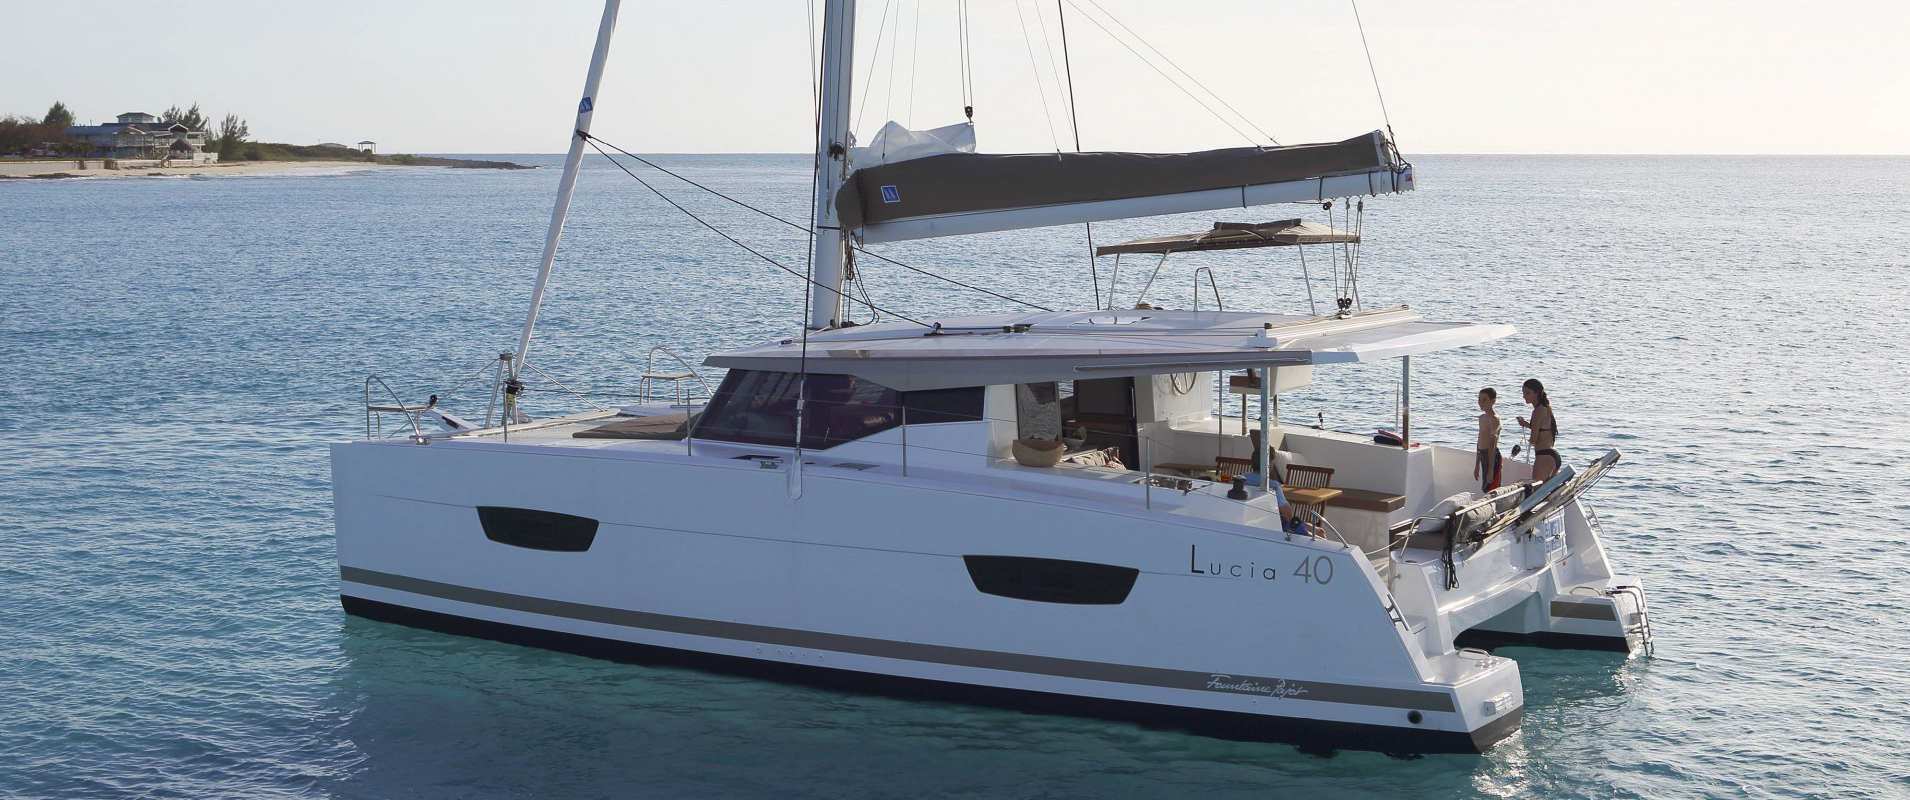 Fountaine Pajot Lucia 40 (For Me Double)  - 0